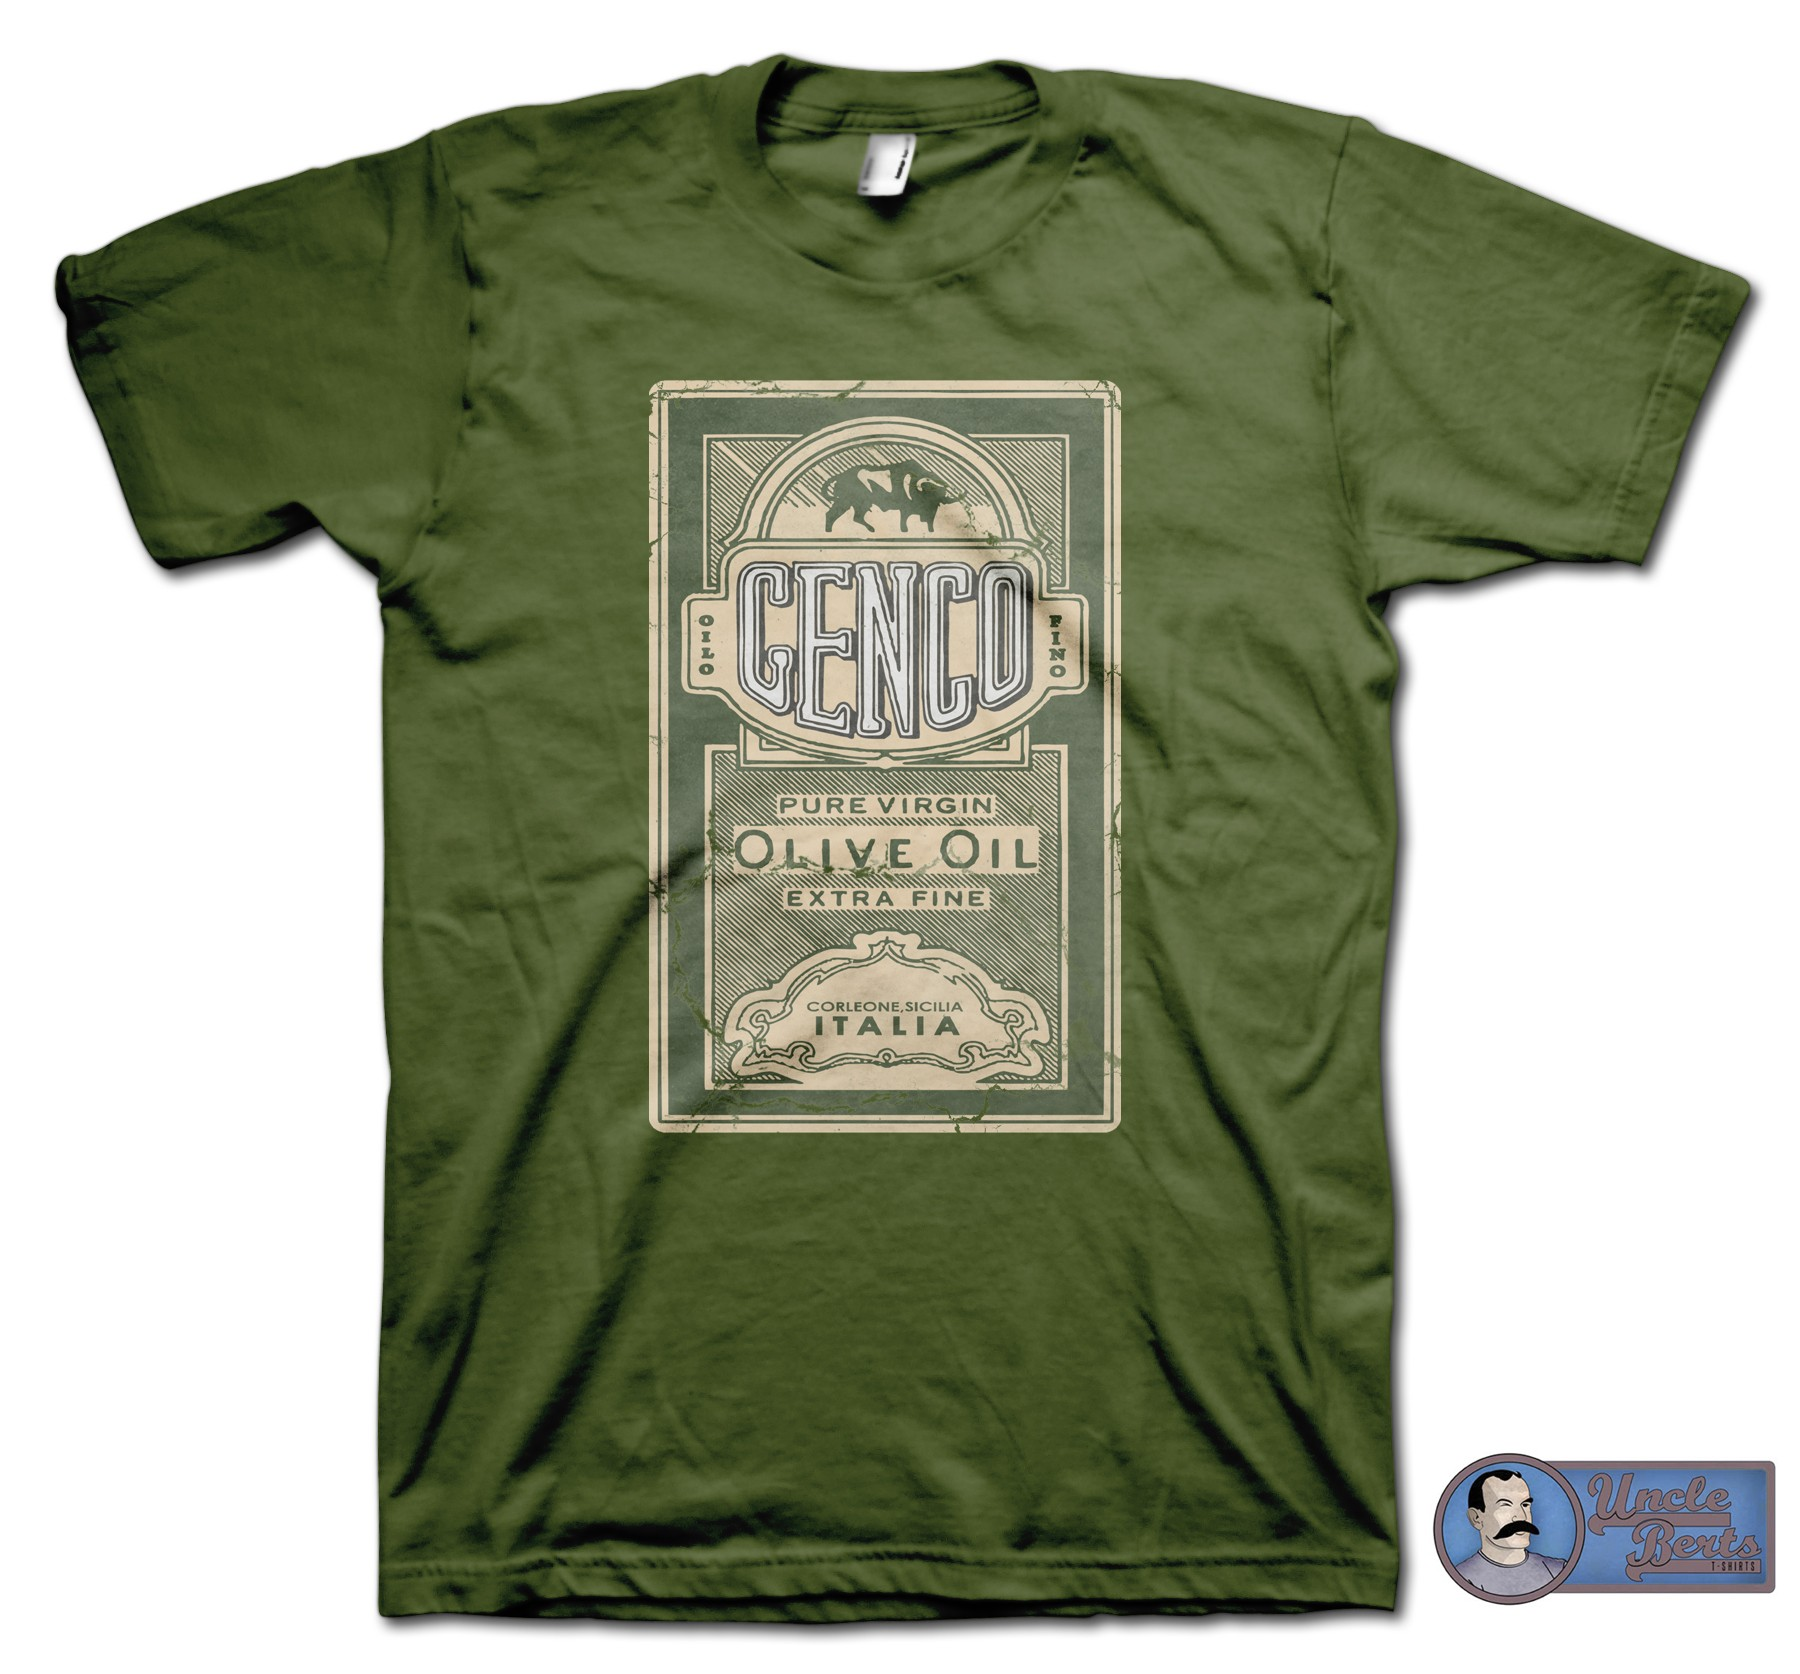 The Godfather (1972) inspired Genco Olive Oil T-Shirt